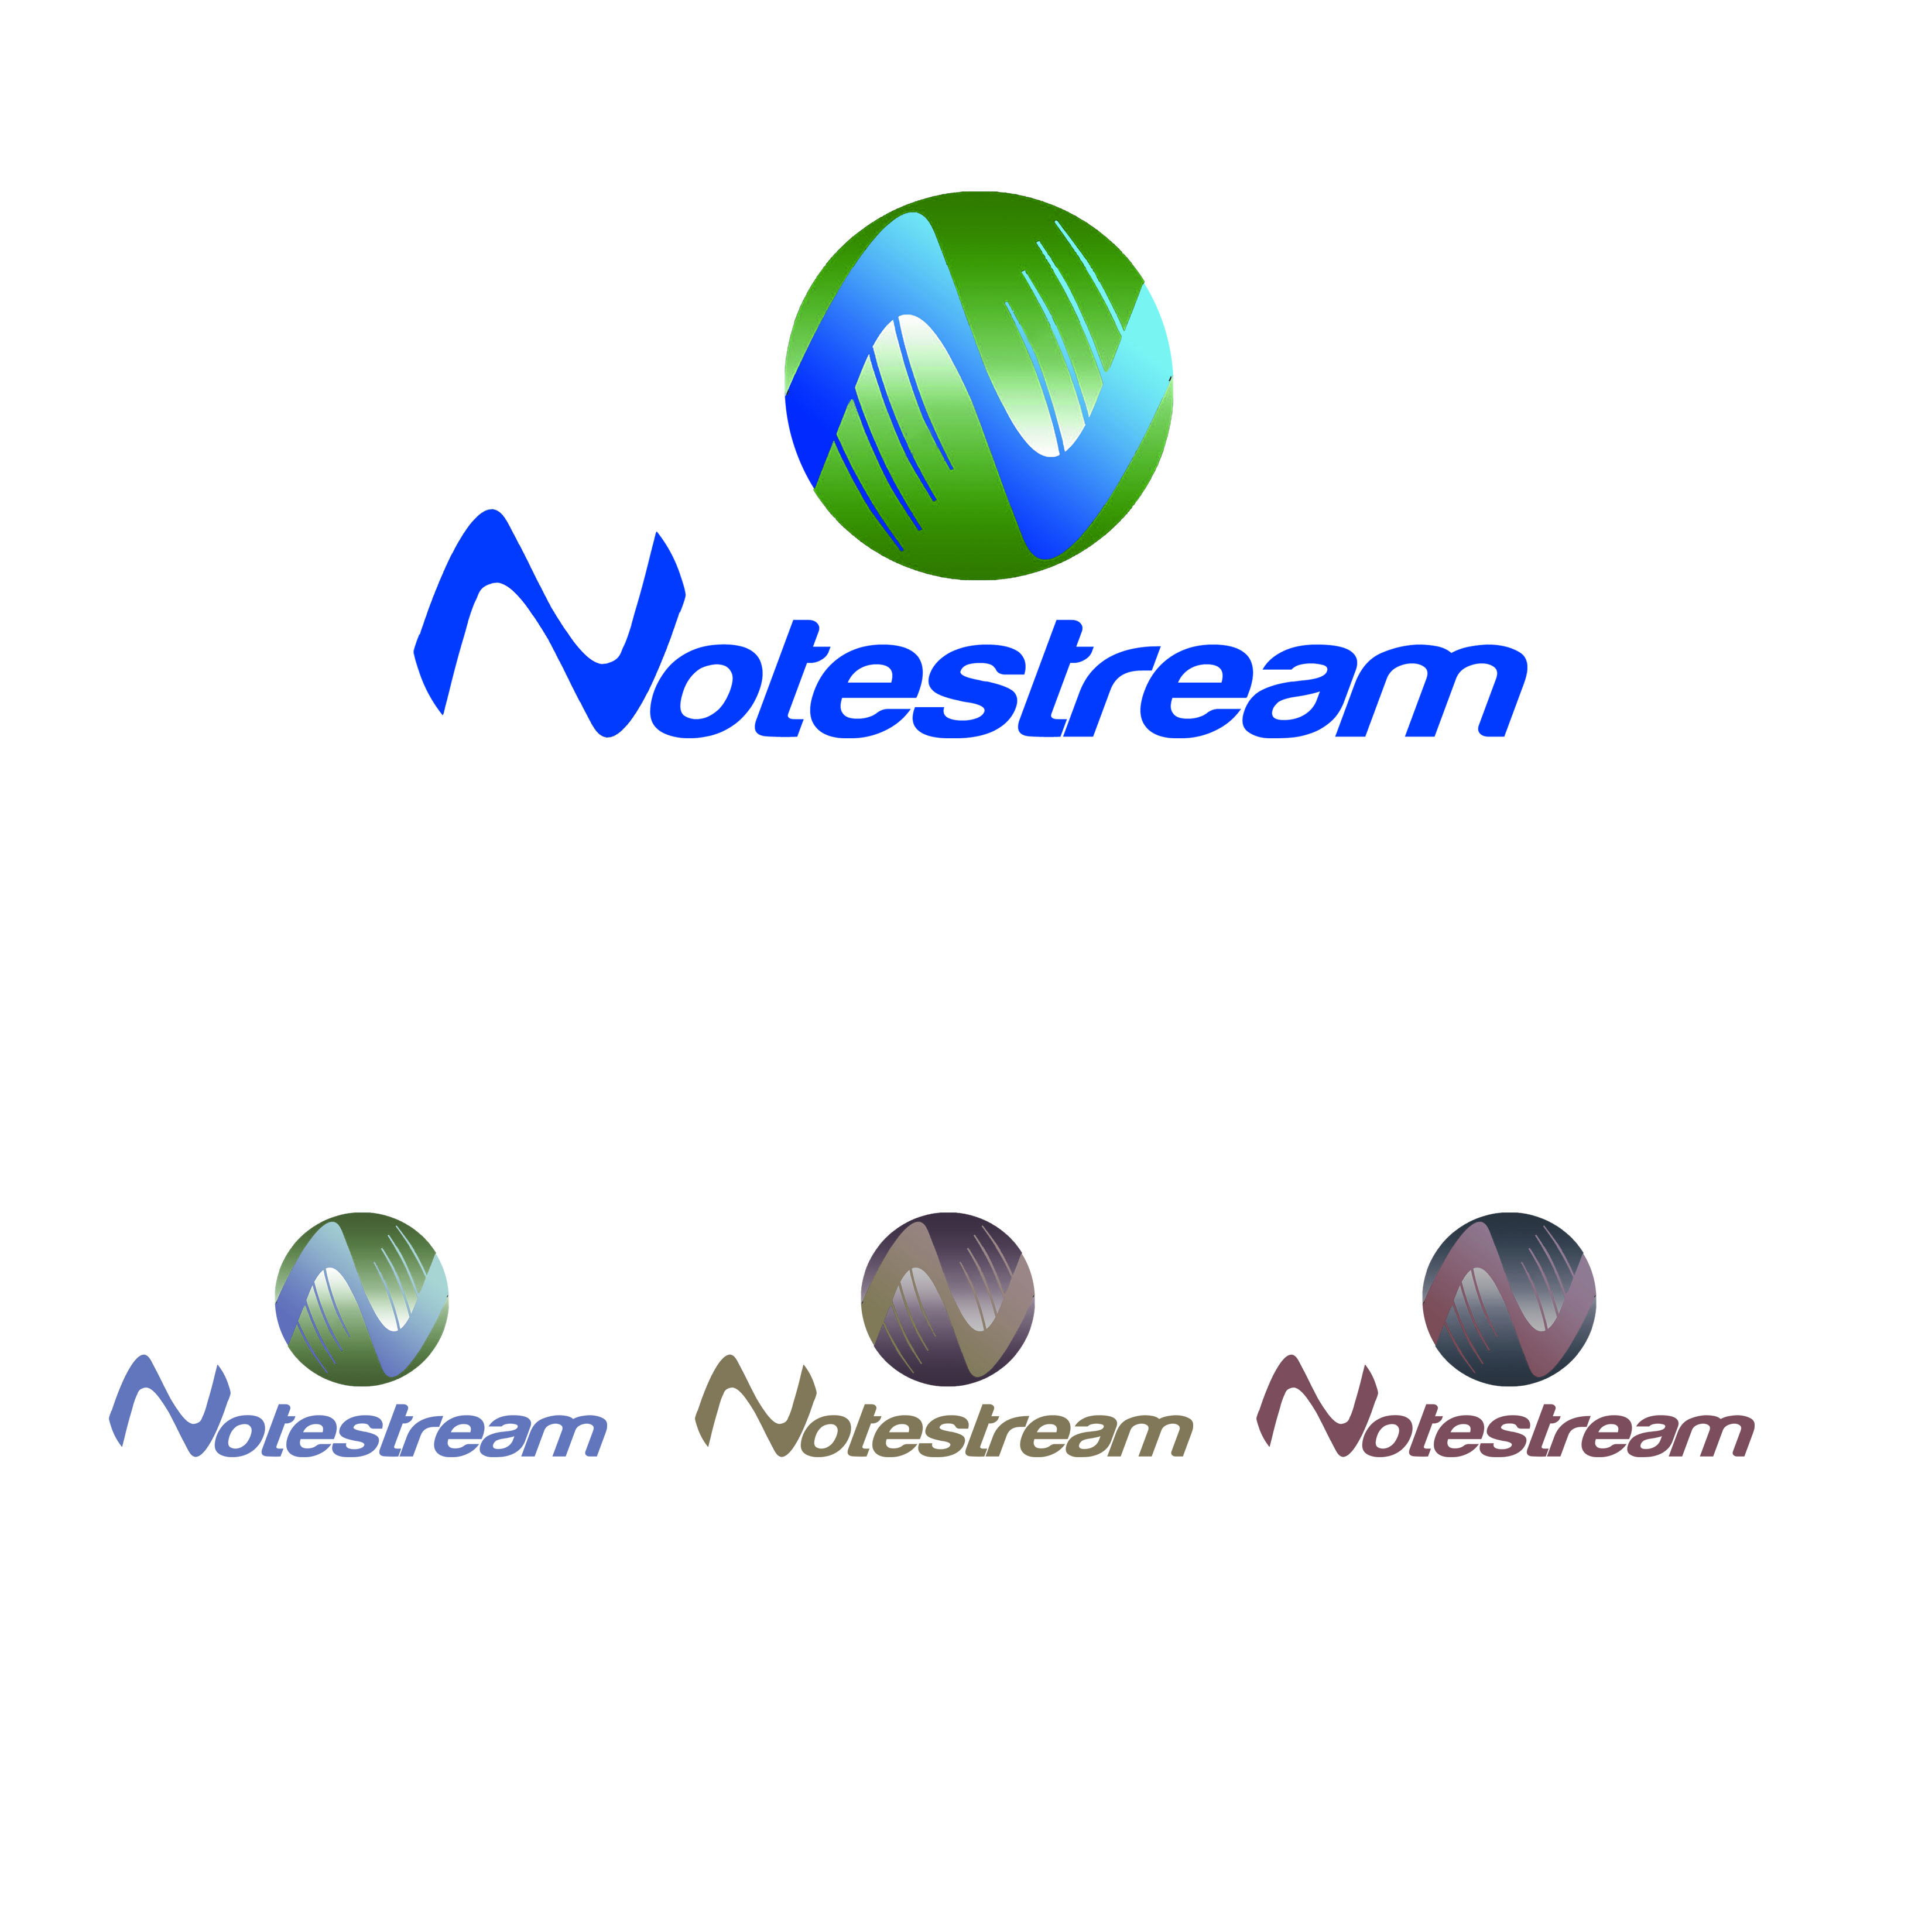 Logo Design by Alan Esclamado - Entry No. 56 in the Logo Design Contest Imaginative Logo Design for NoteStream.